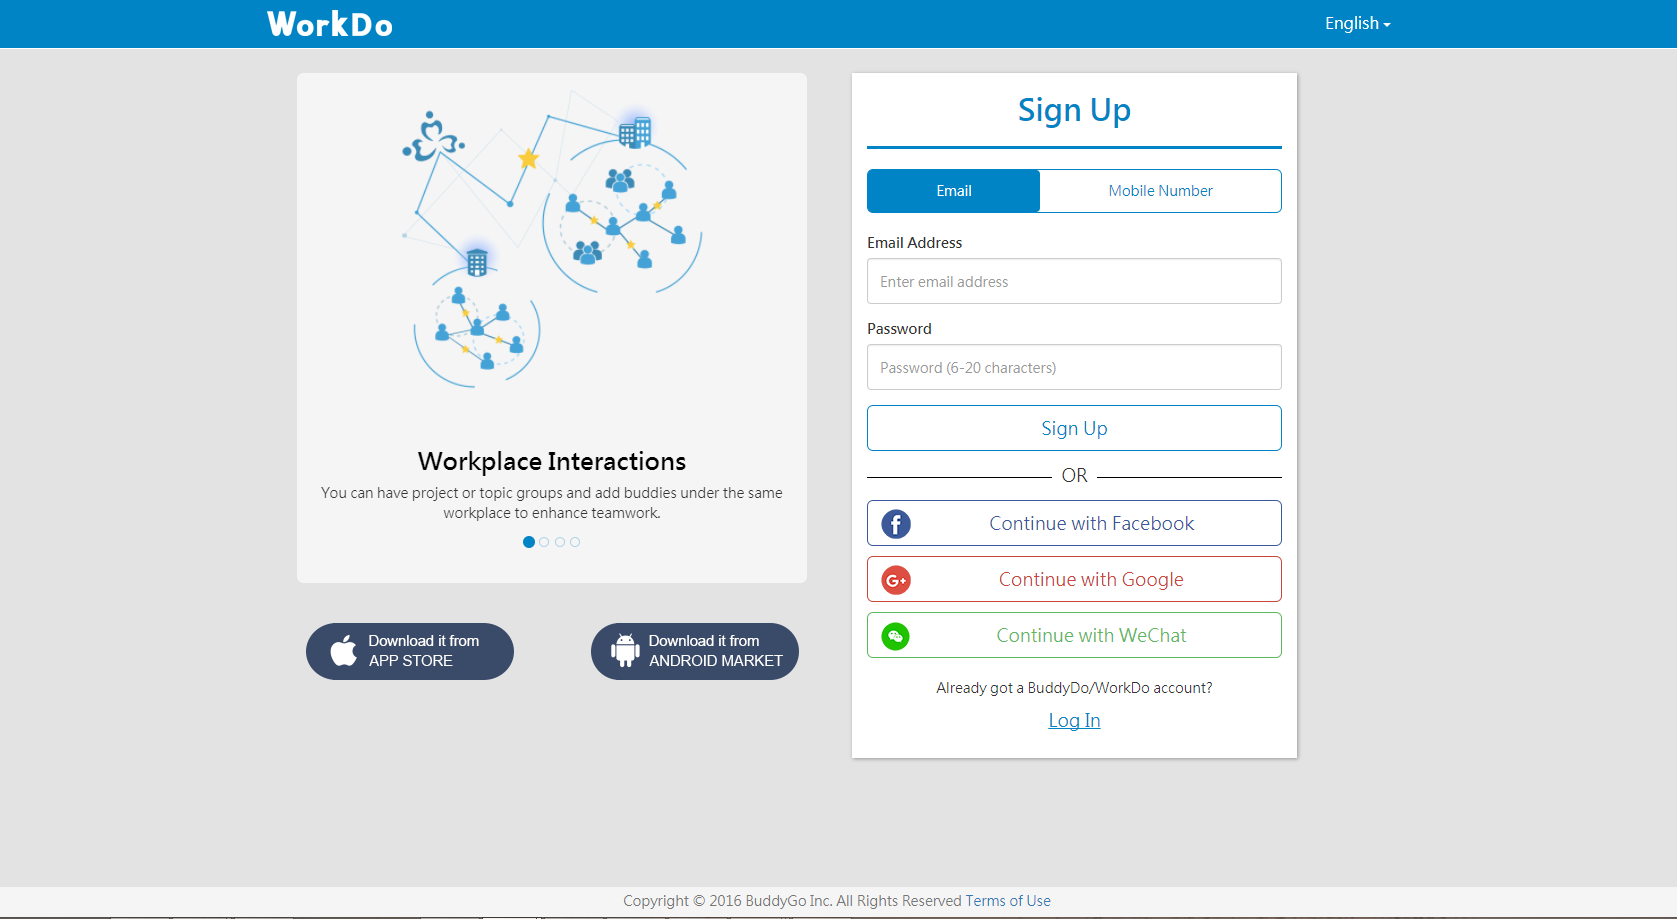 WorkDo Web Sign Up with Email